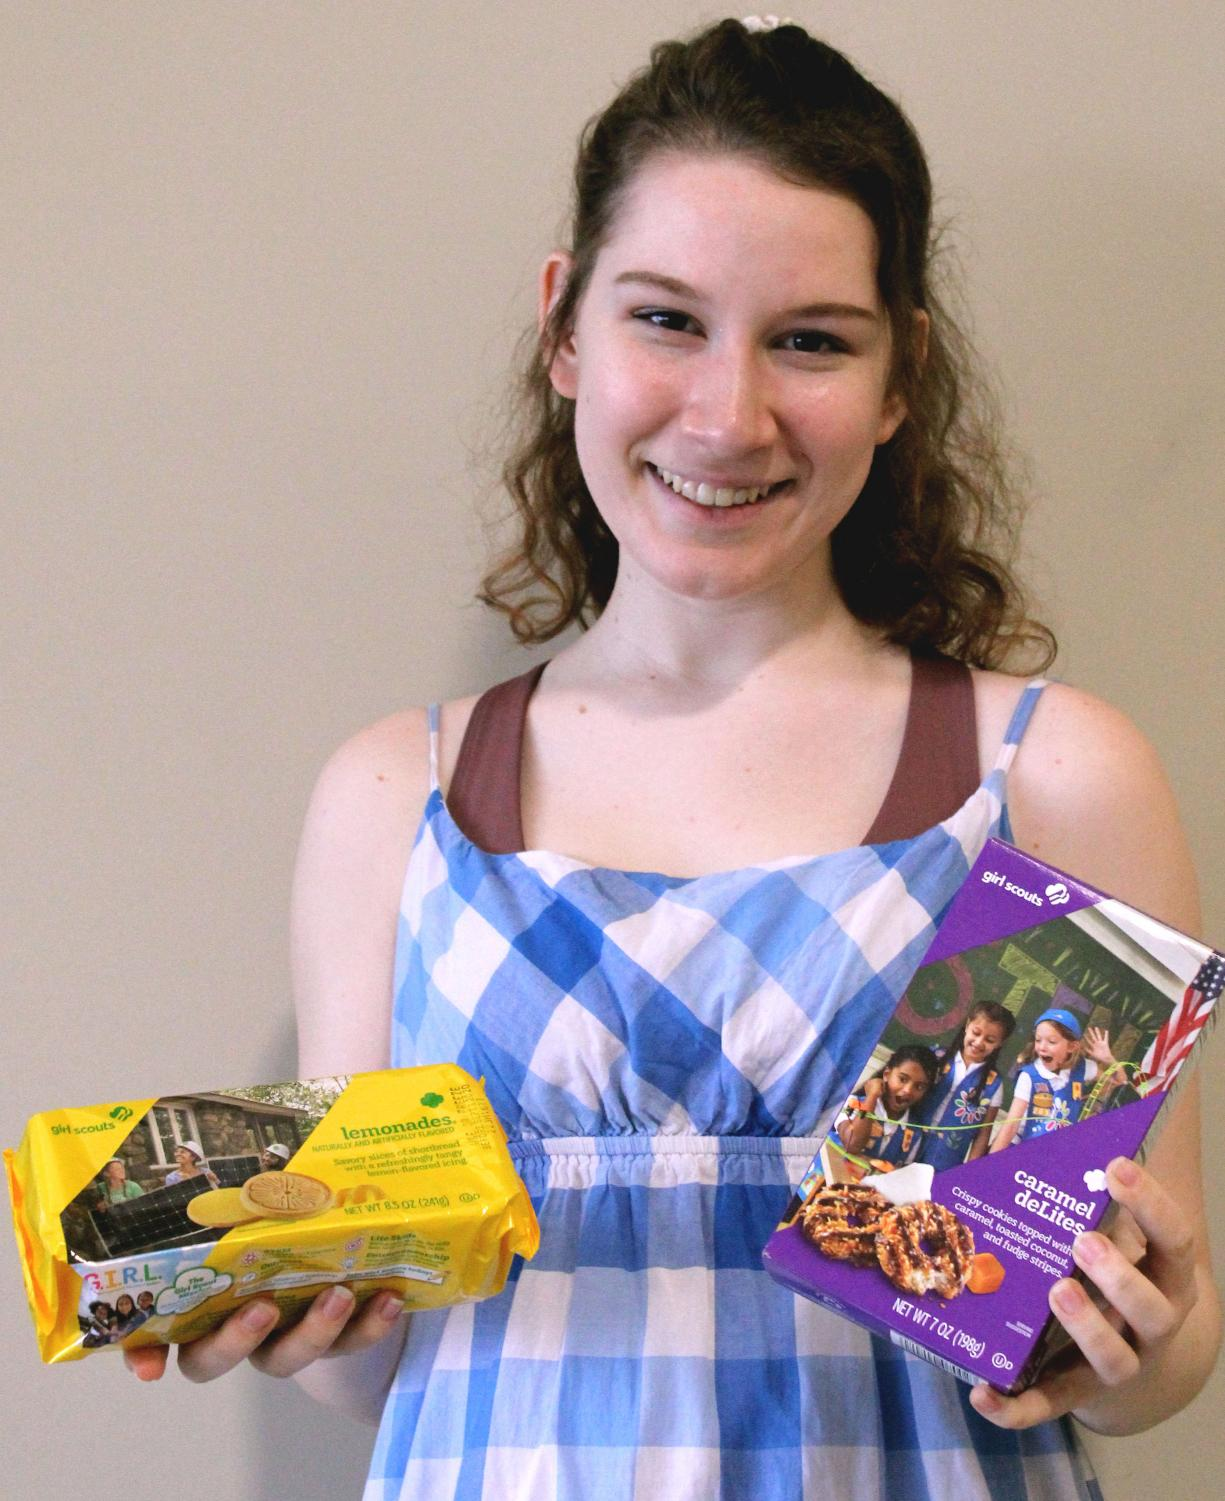 Girl+Scout+Ambassador+Elizabeth+Cluchey+smiles+while+holding+her+favorite+Girl+Scout+cookies%2C+Lemonades+and+Carmel+deLites.+In+order+to+attract+more+customers%2C+Cluchey+accepts+%2C+cash%2C+credit%2C+and+Apple+Pay+as+appropriate+payment+methods.+%0A